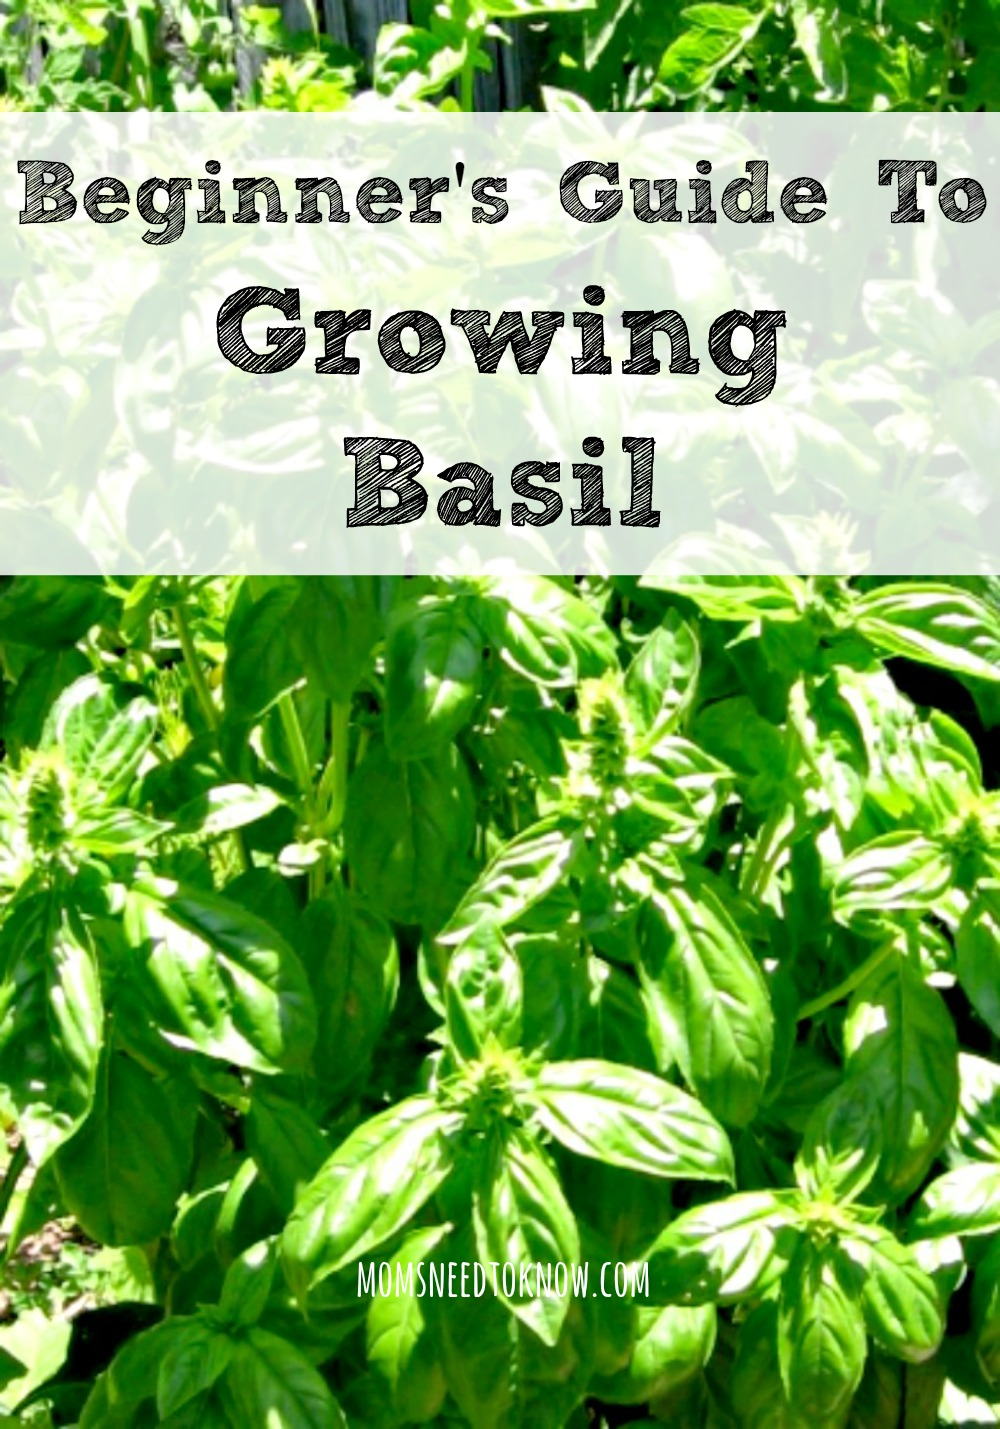 A Beginner's Guide To Growing Basil